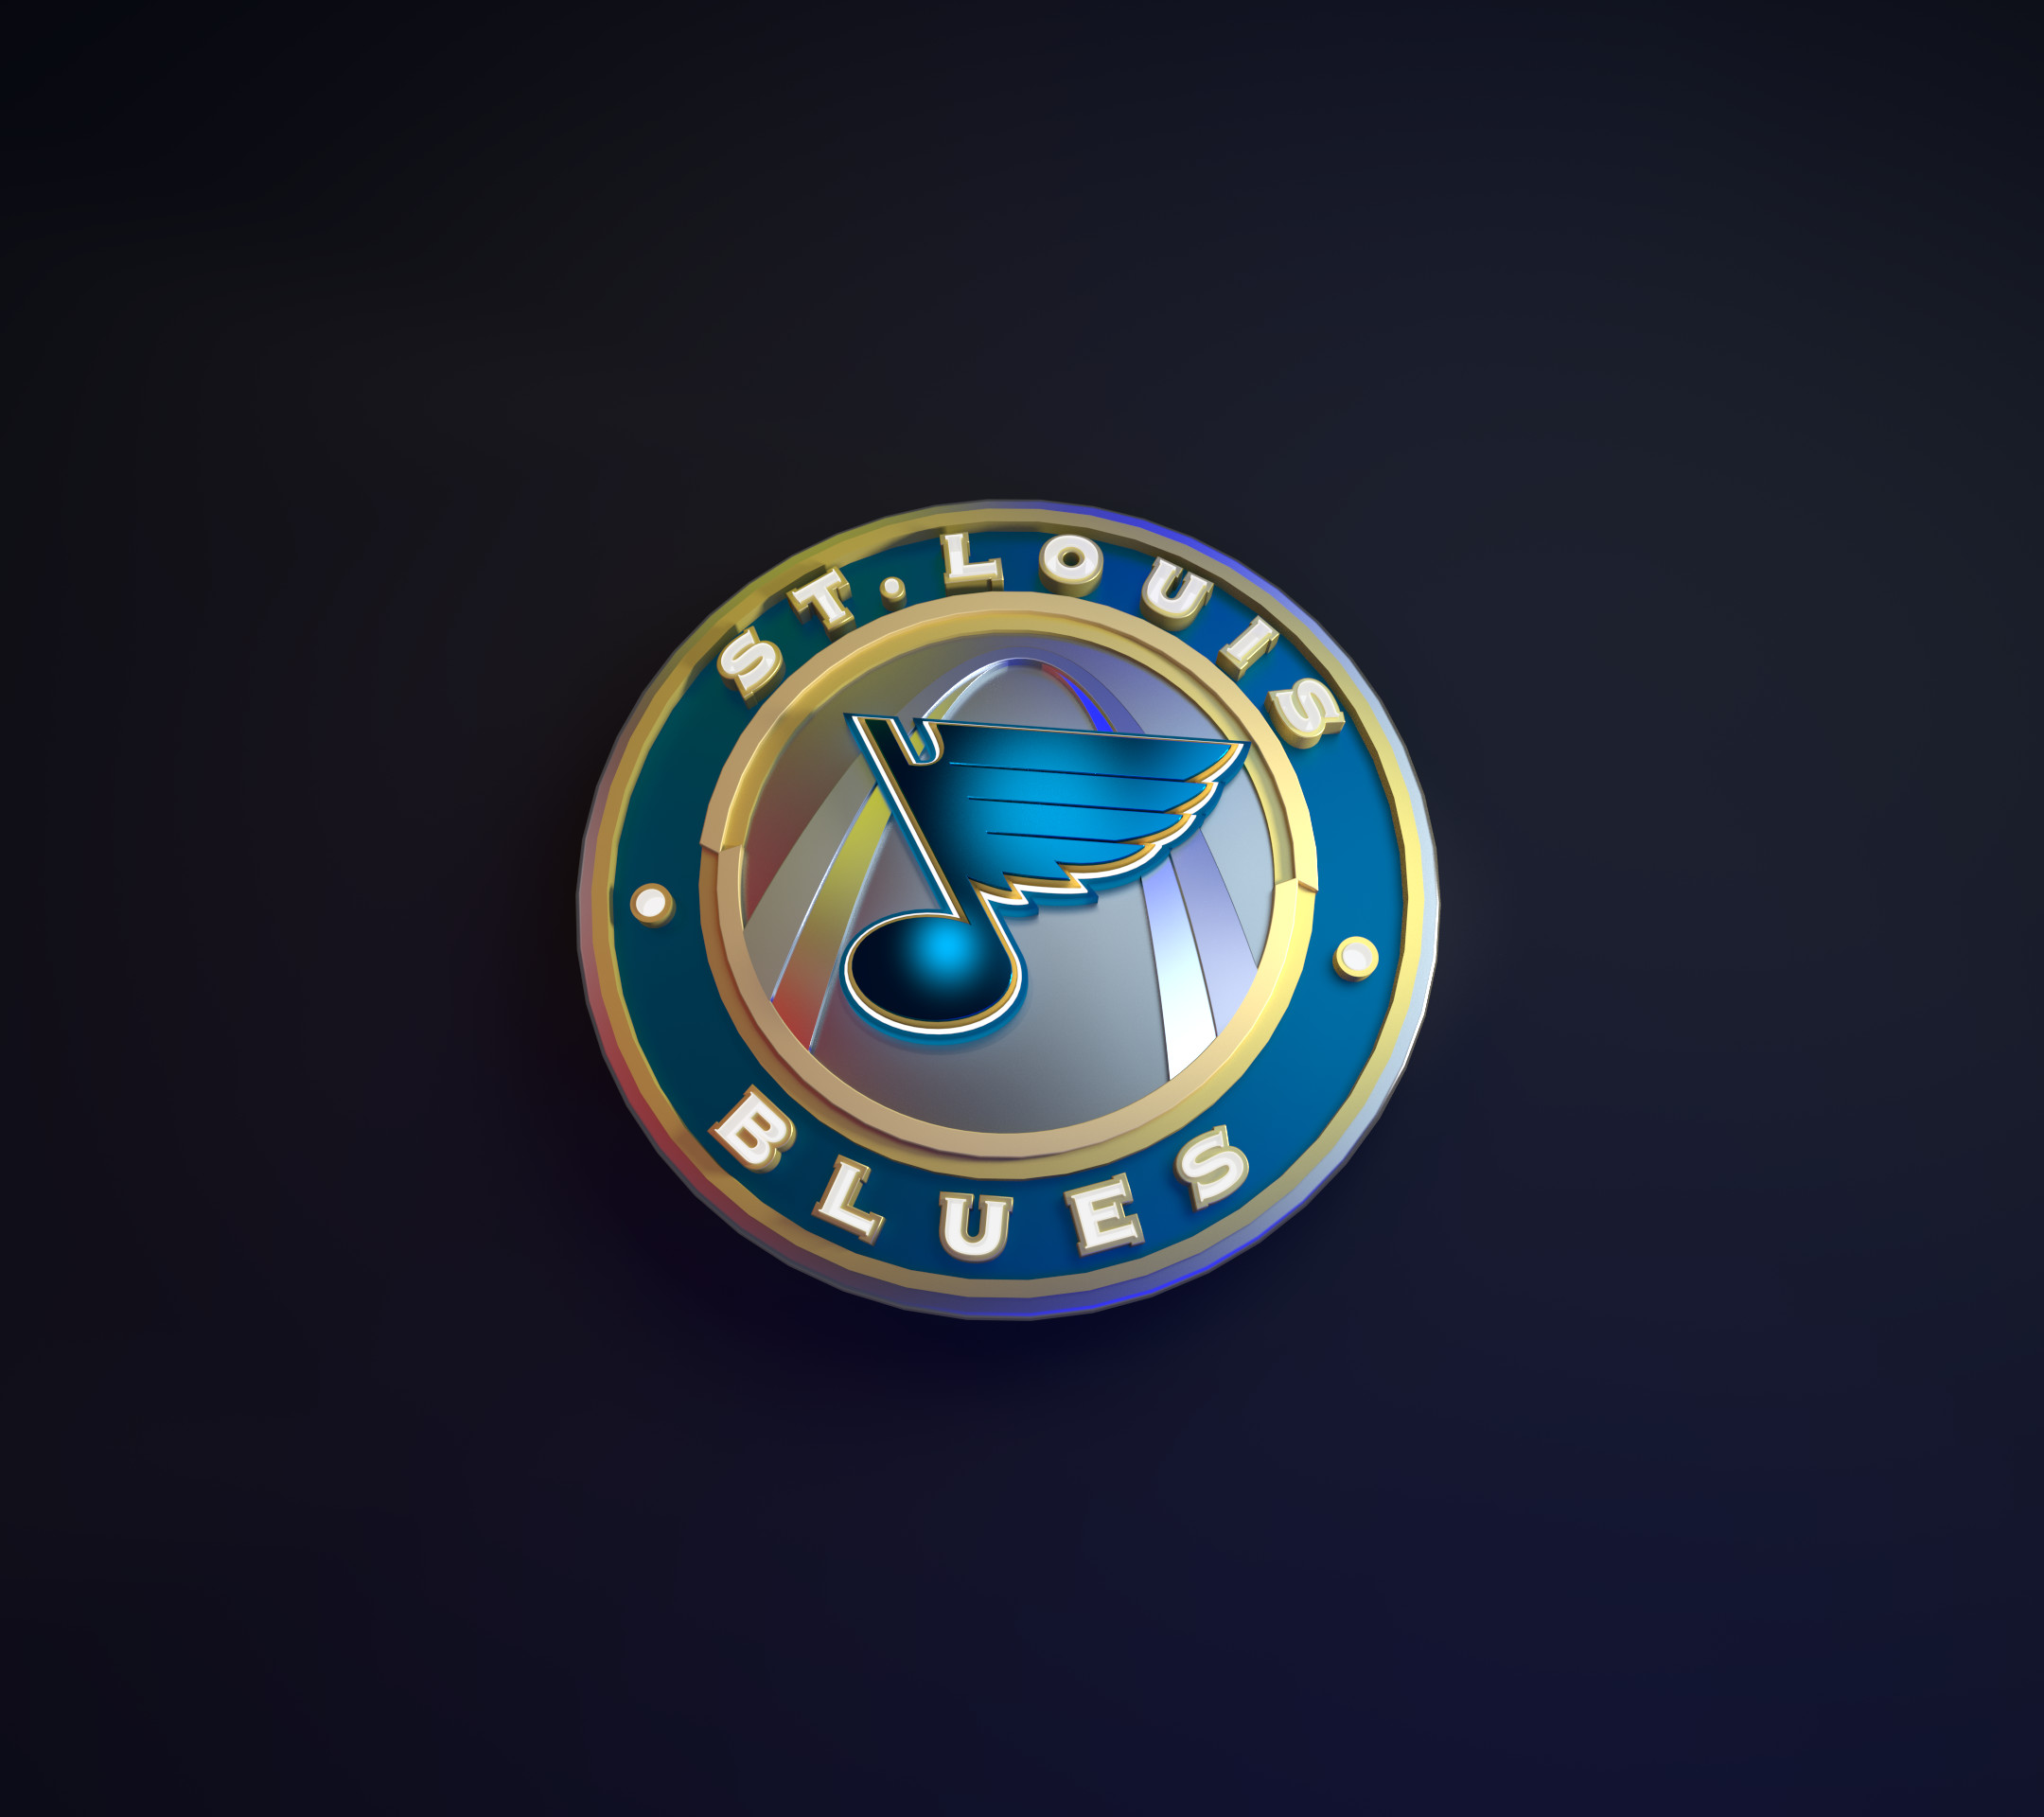 … hd st louis blues backgrounds page 2 of 3 wallpaper wiki …